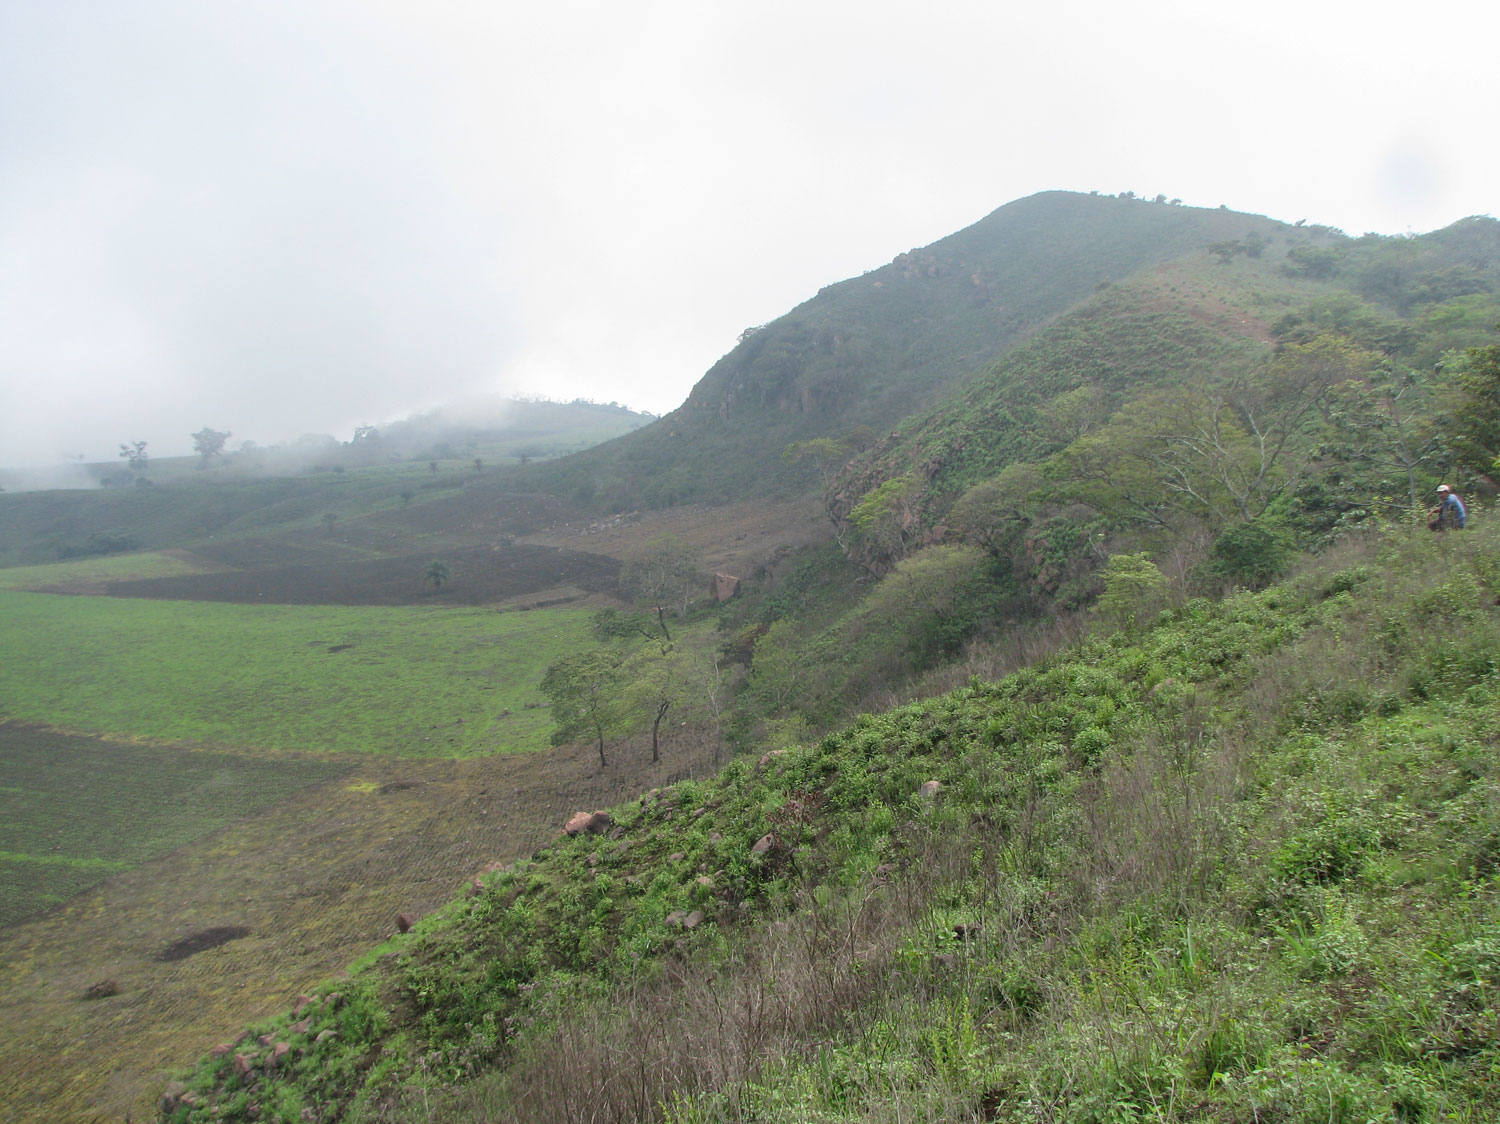 The hillside summit with a good view of the crater